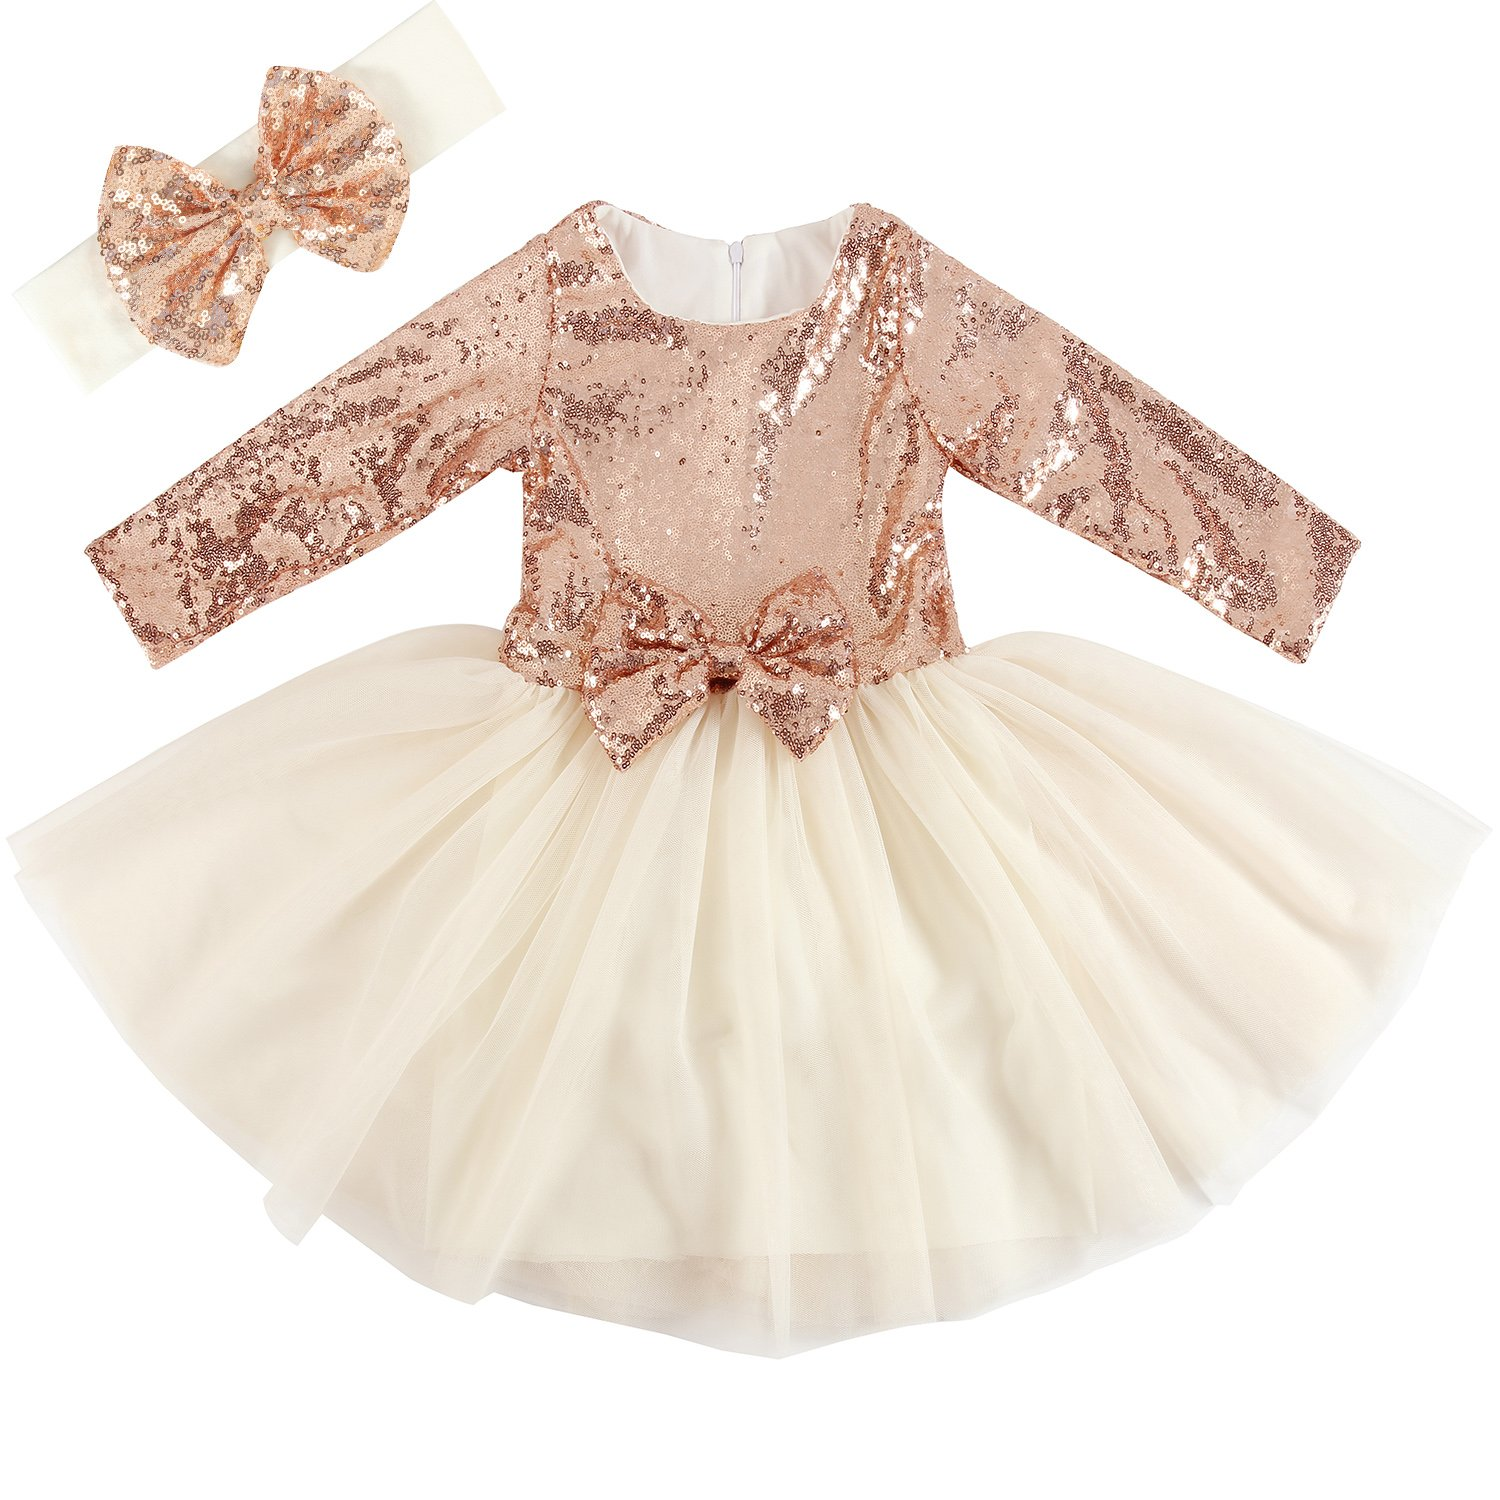 Cilucu Flower Girl Dresses Toddlers Sequin Party Dress Tutu Prom Cocktail Gown with Long Sleeve Rose Gold/Offwhite 3T-4T